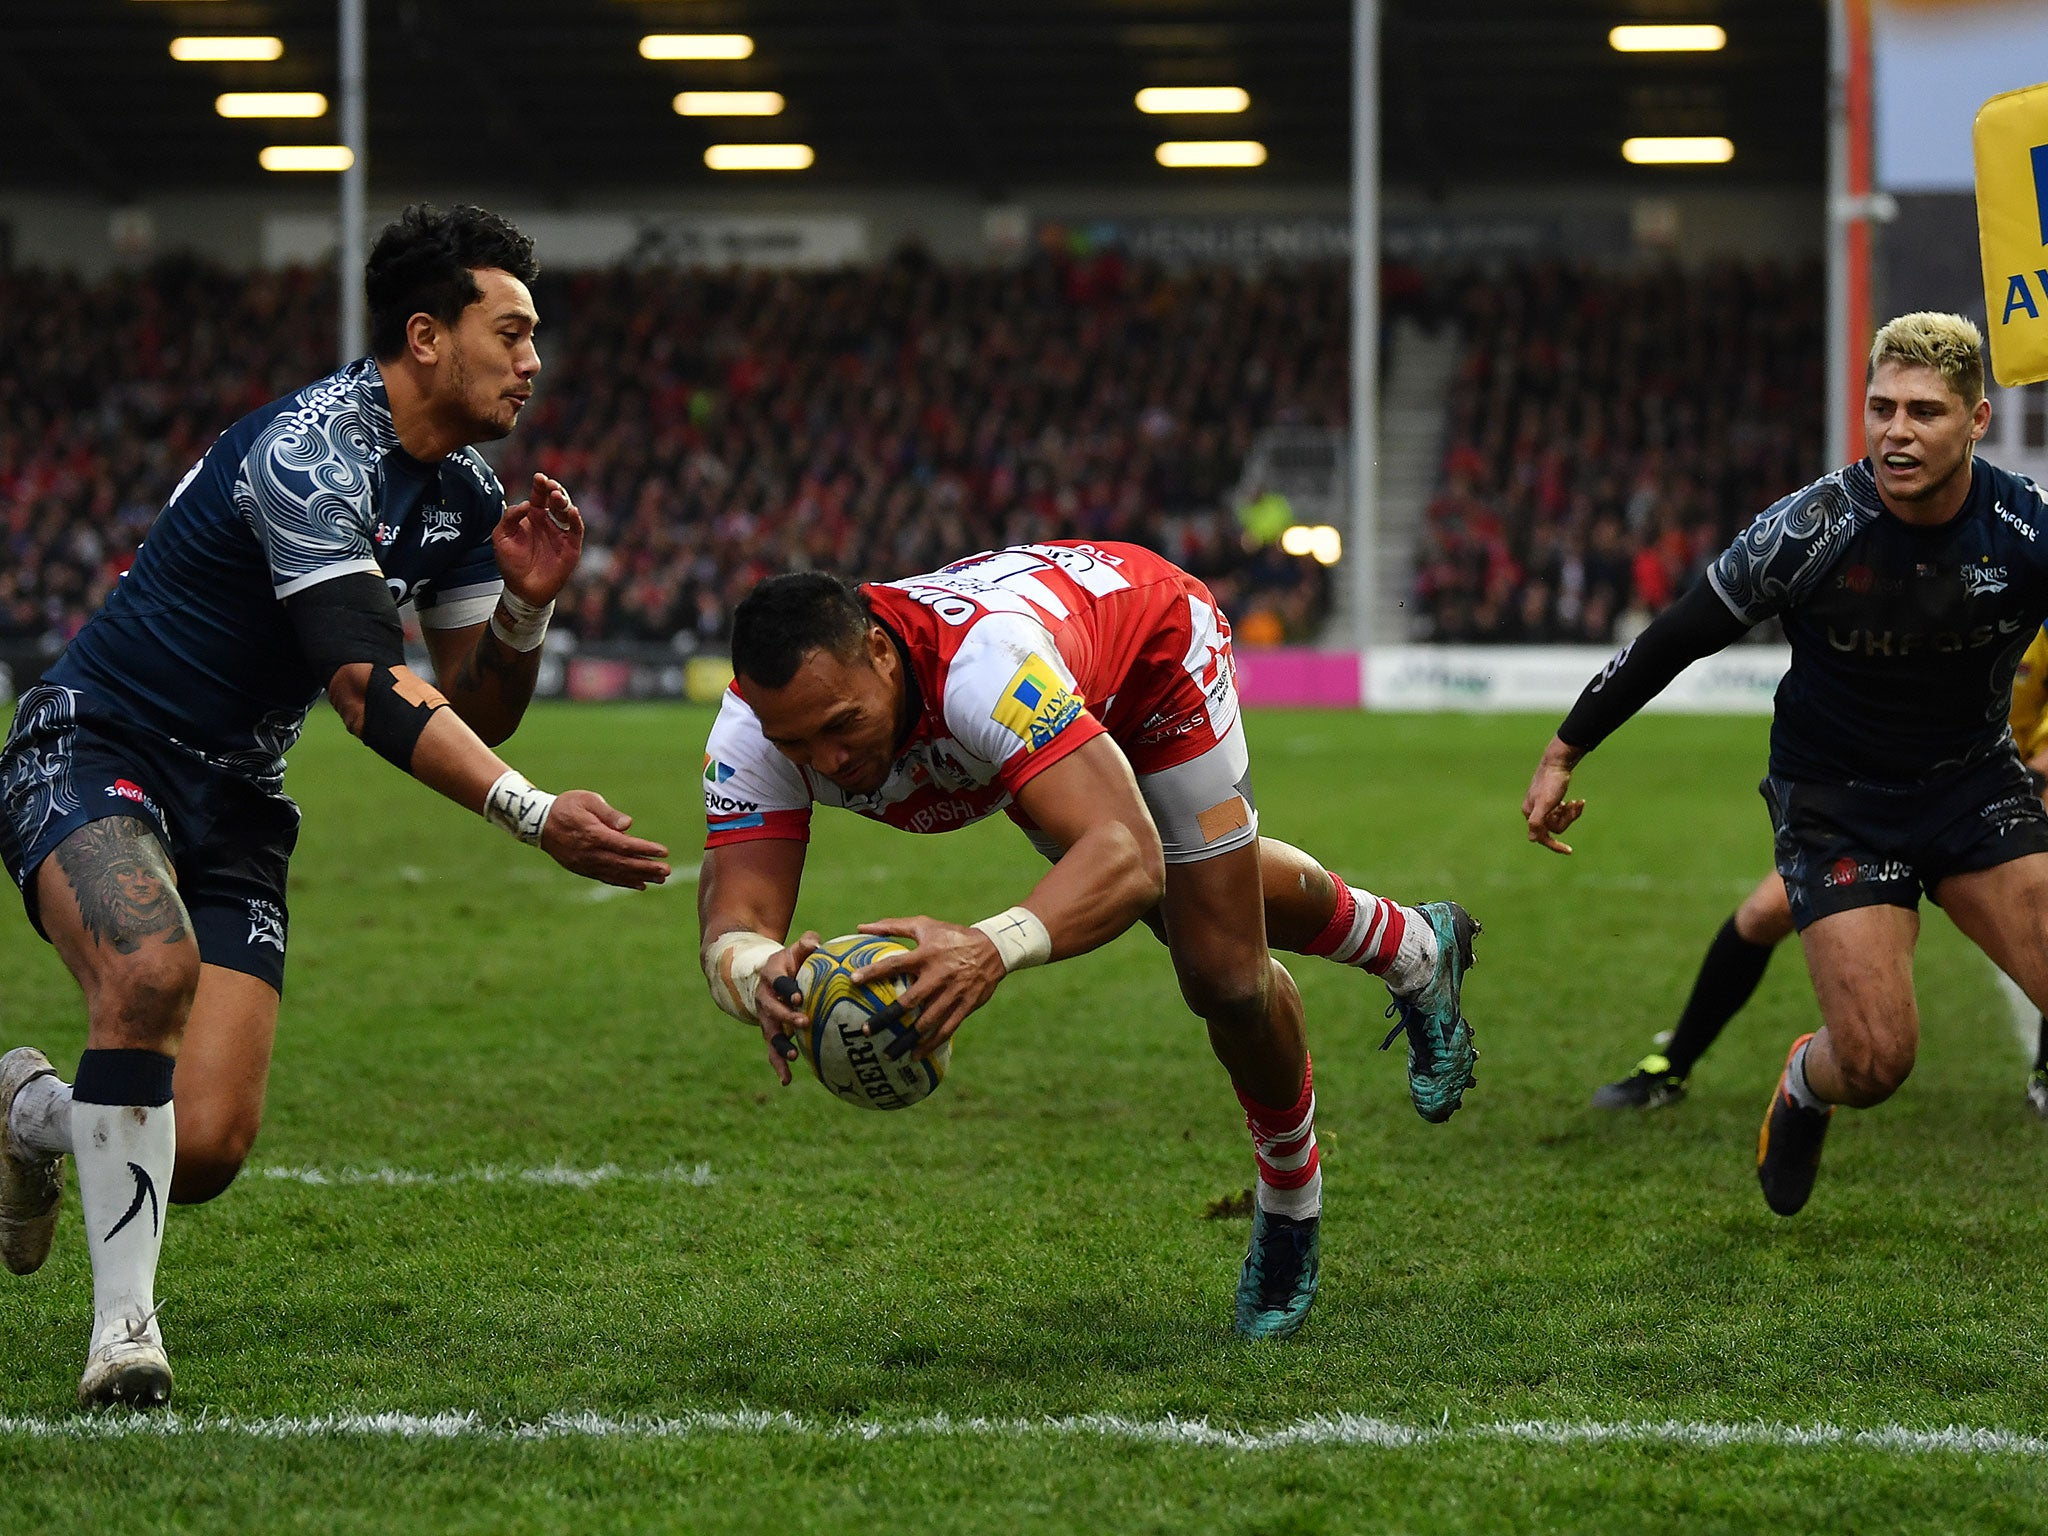 Gloucester fight back to clinch victory against Sale